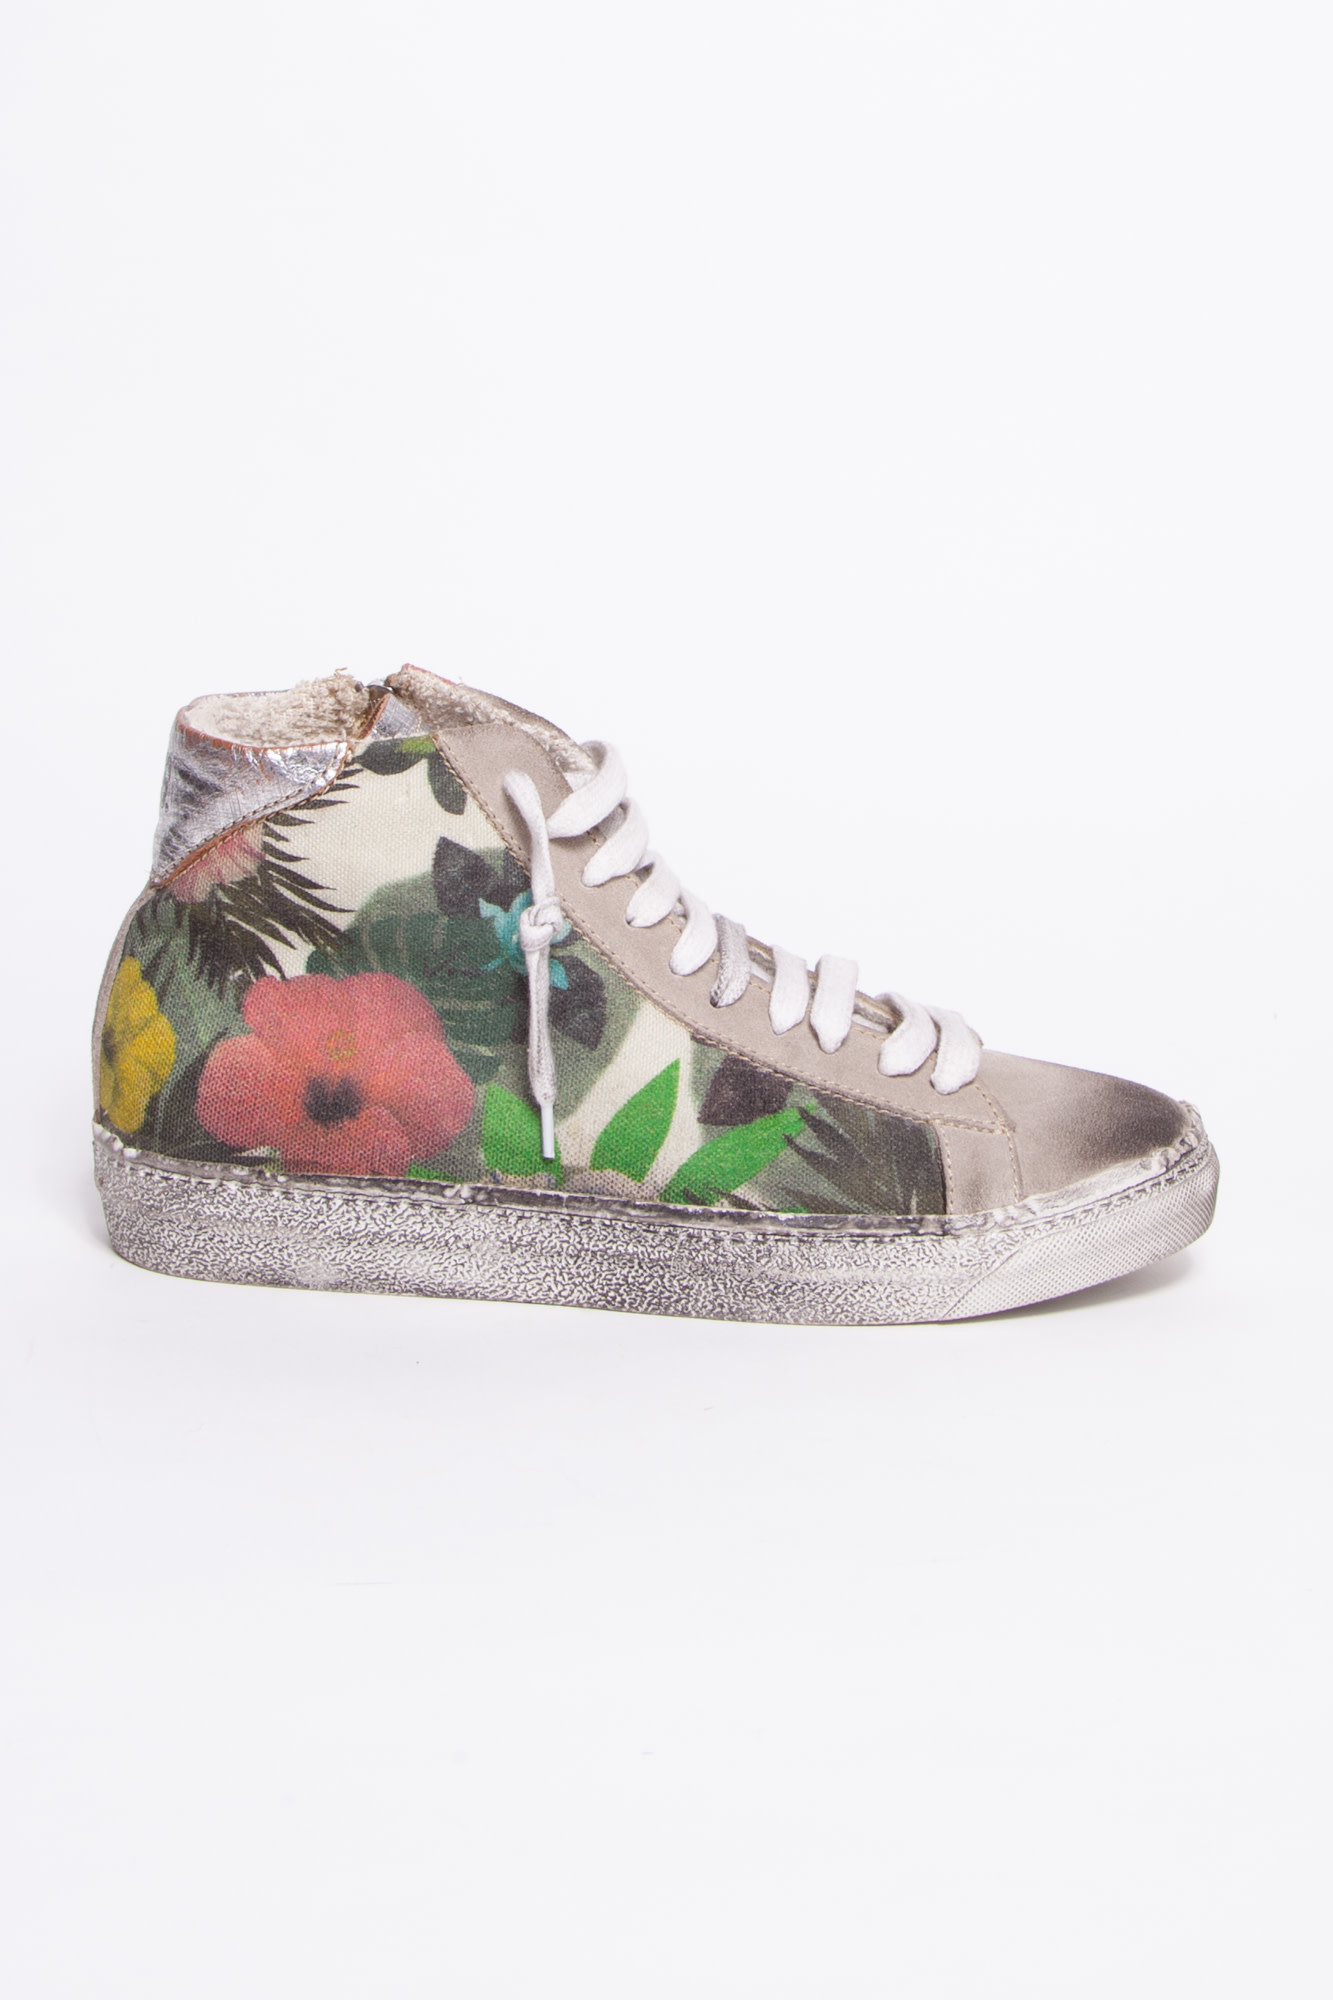 P448 HIGH TOP FLORAL SNEAKERS WITH WORN EFFECT - P448